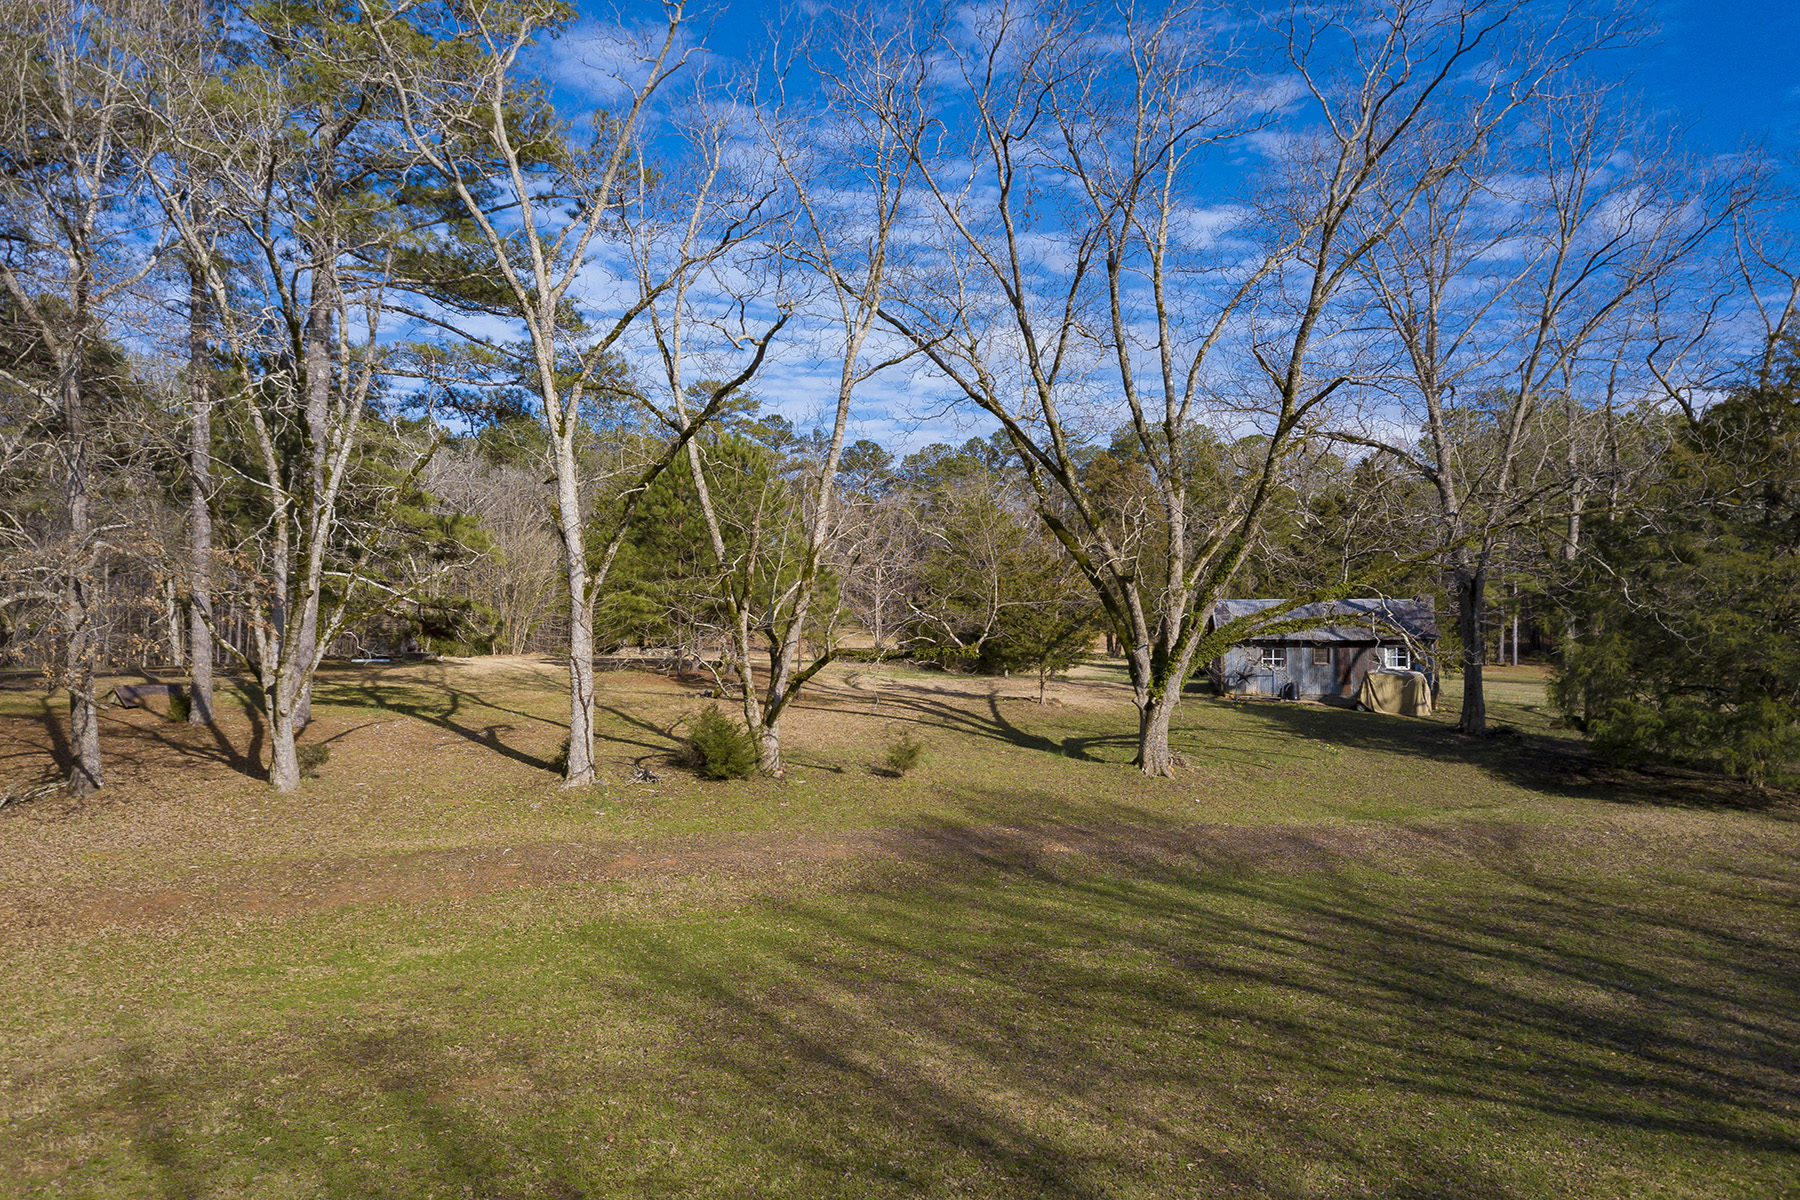 Land for Sale at One Of A Kind Property! 10 Plus Acres Next To Serenbe Community 0 Atlanta Newnan Road Chattahoochee Hills, Georgia 30268 United States